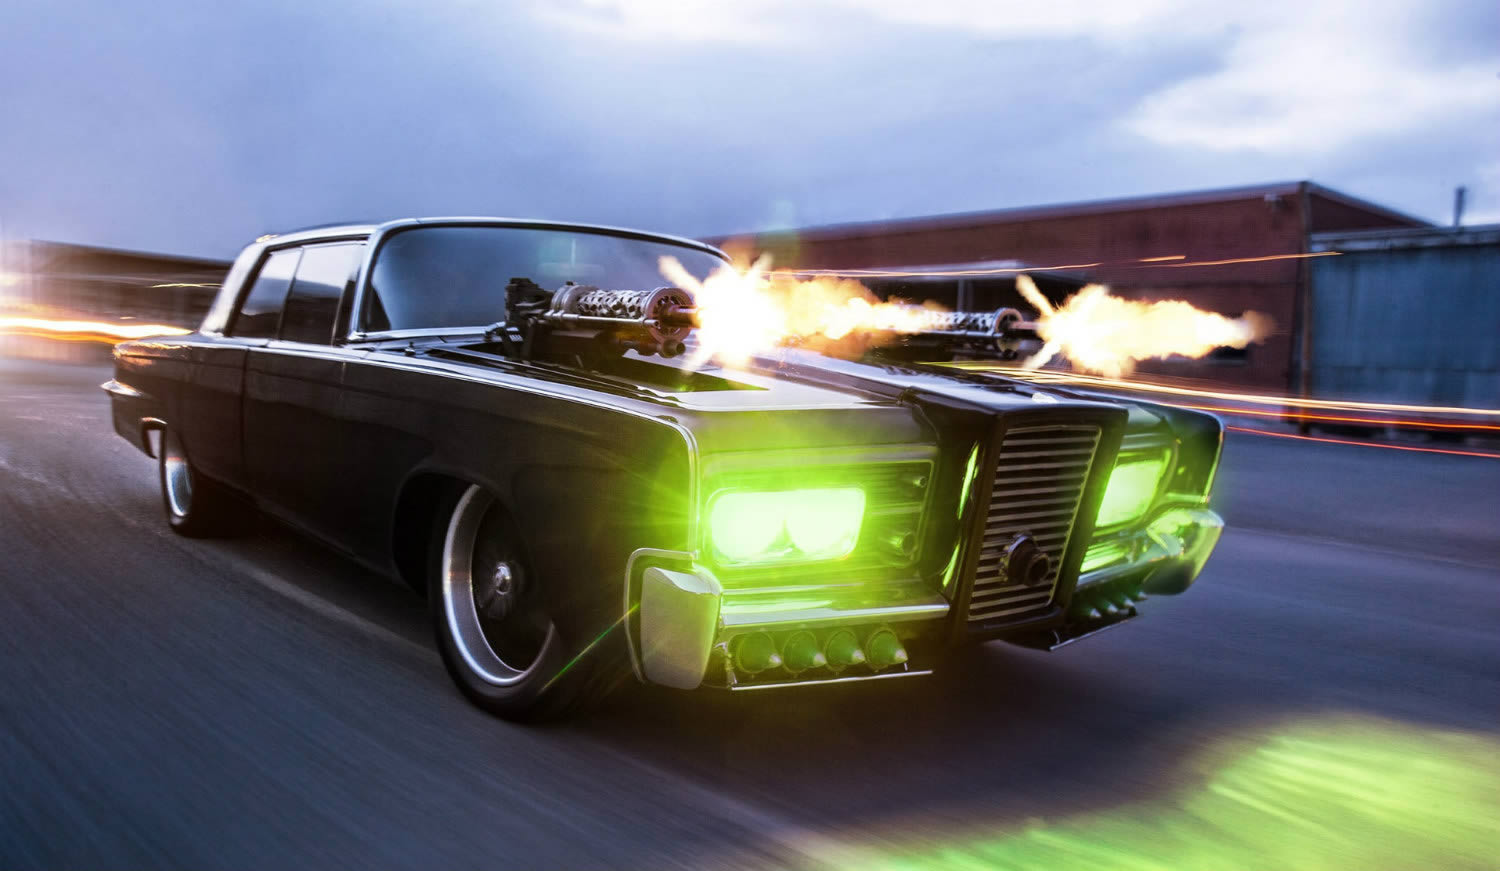 Green Hornet – Chrysler Imperial Crown